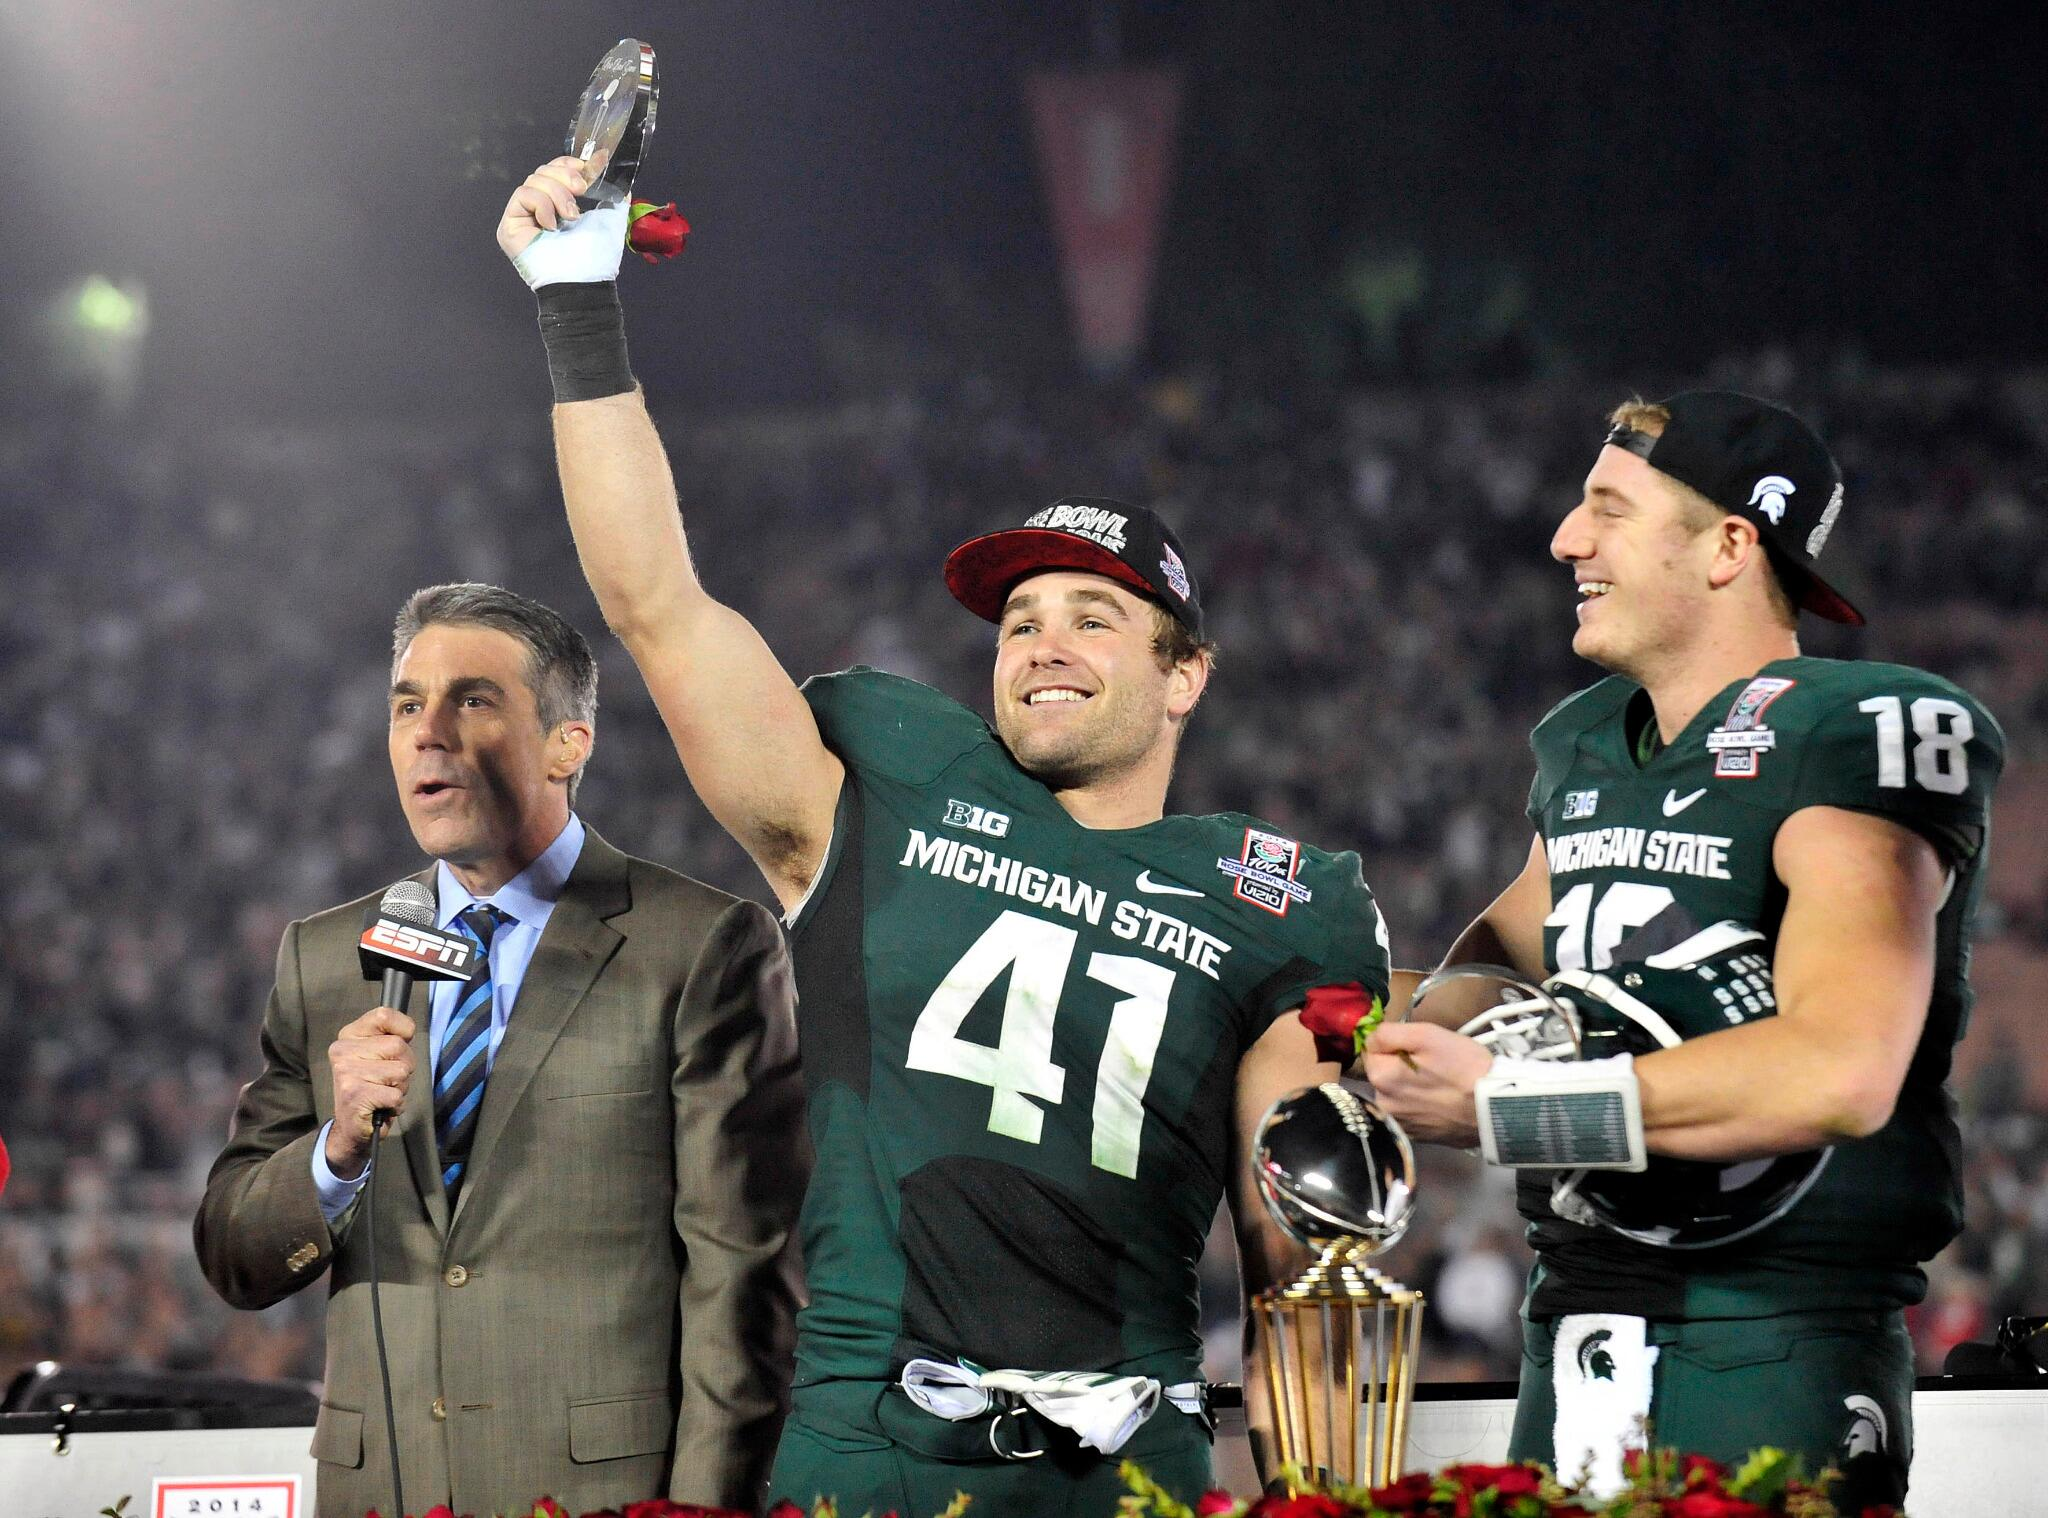 RT @BTNBrentYarina: What would you have told me if I said these guys would be @rosebowlgame O & D MVPs back in the preseason? http://t.co/RxEwaMpEOx